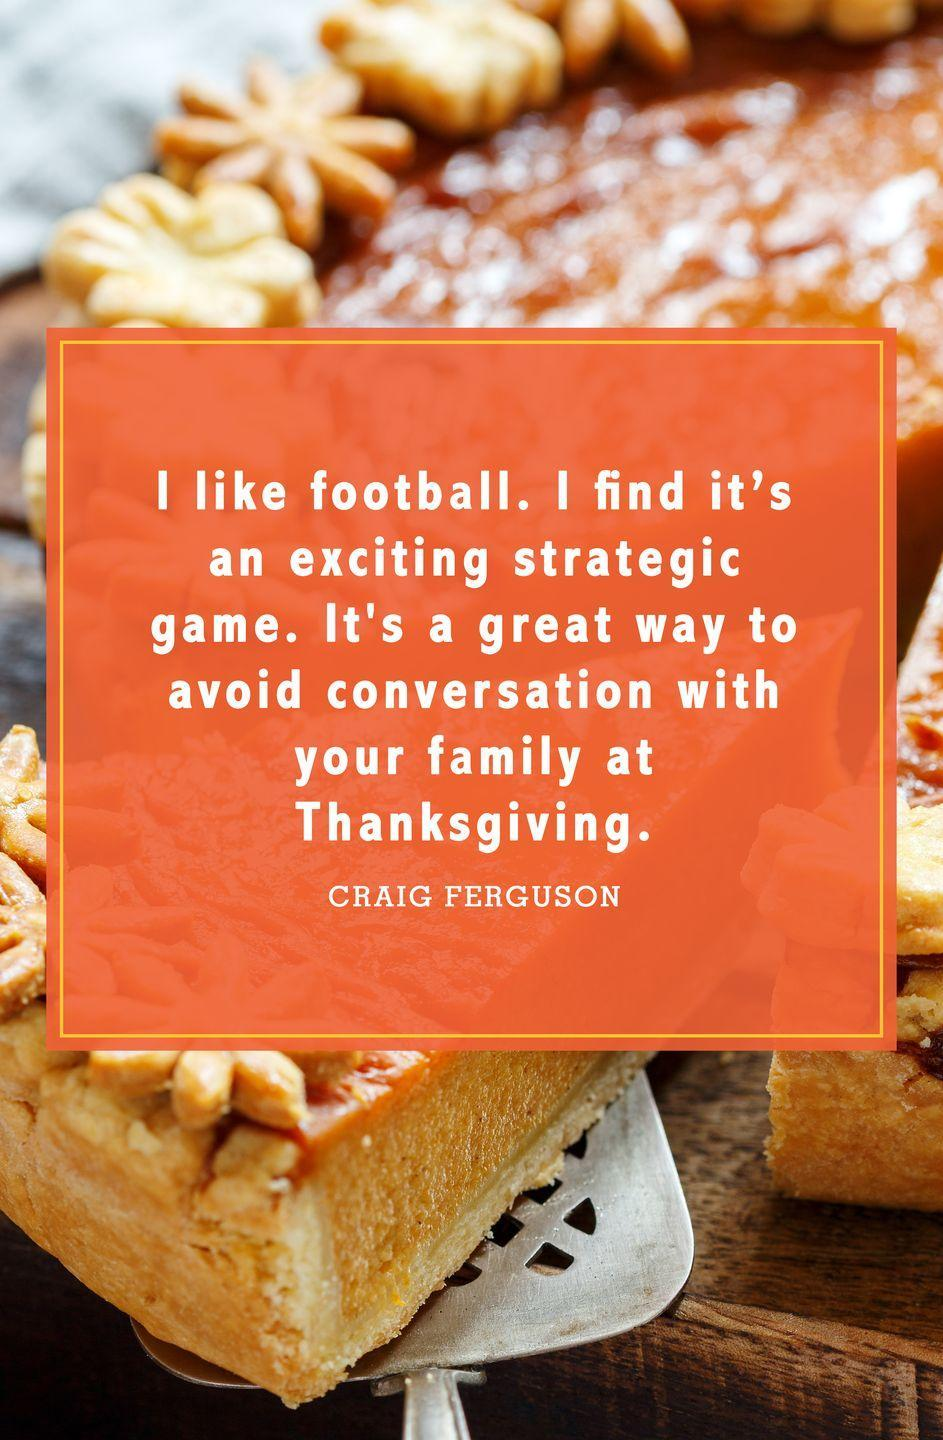 "<p>""I like football. I find it's an exciting strategic game. It's a great way to avoid conversation with your family at Thanksgiving.""</p>"